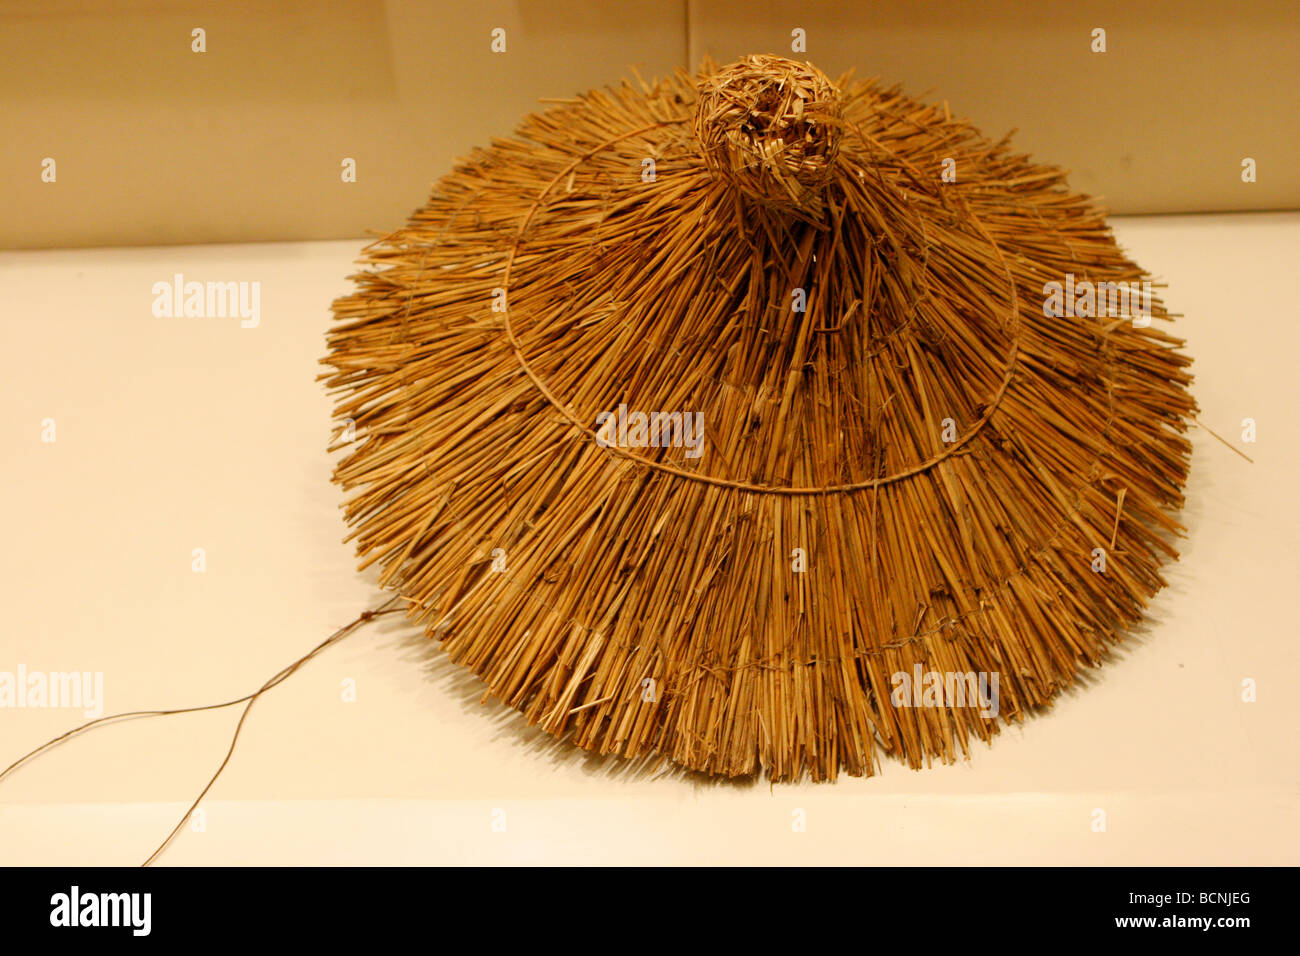 18981851 Kite with traditional Chinese bamboo hat design, The Kite Museum, Weifang,  Shandong Province, China